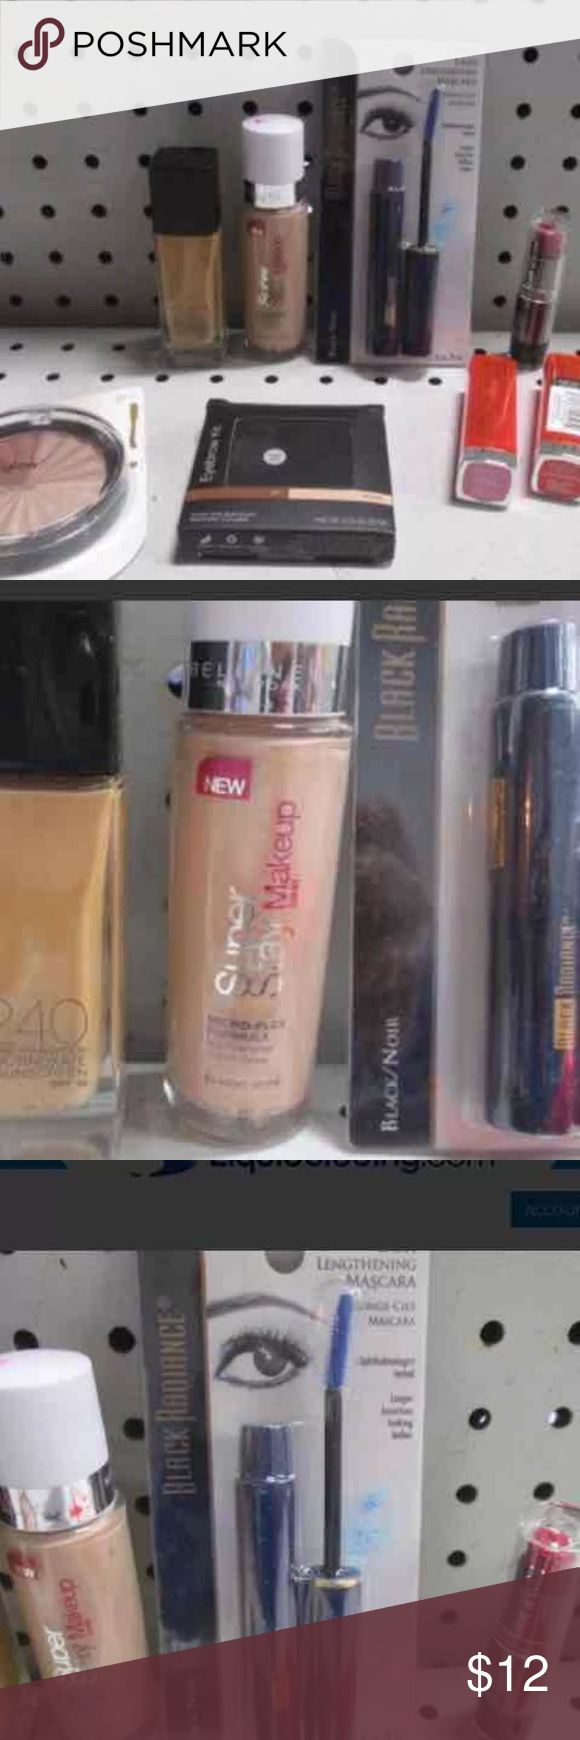 Lot of Misc Makeup NEW LOT DETAILS 8-Make-Up. Includes Black Radiance® lash lengthening mascara in black, e.l.f. Studio eyebrow kit, Wet n Wild lipstick in cherry picking and more. NEW. Makeup Mascara